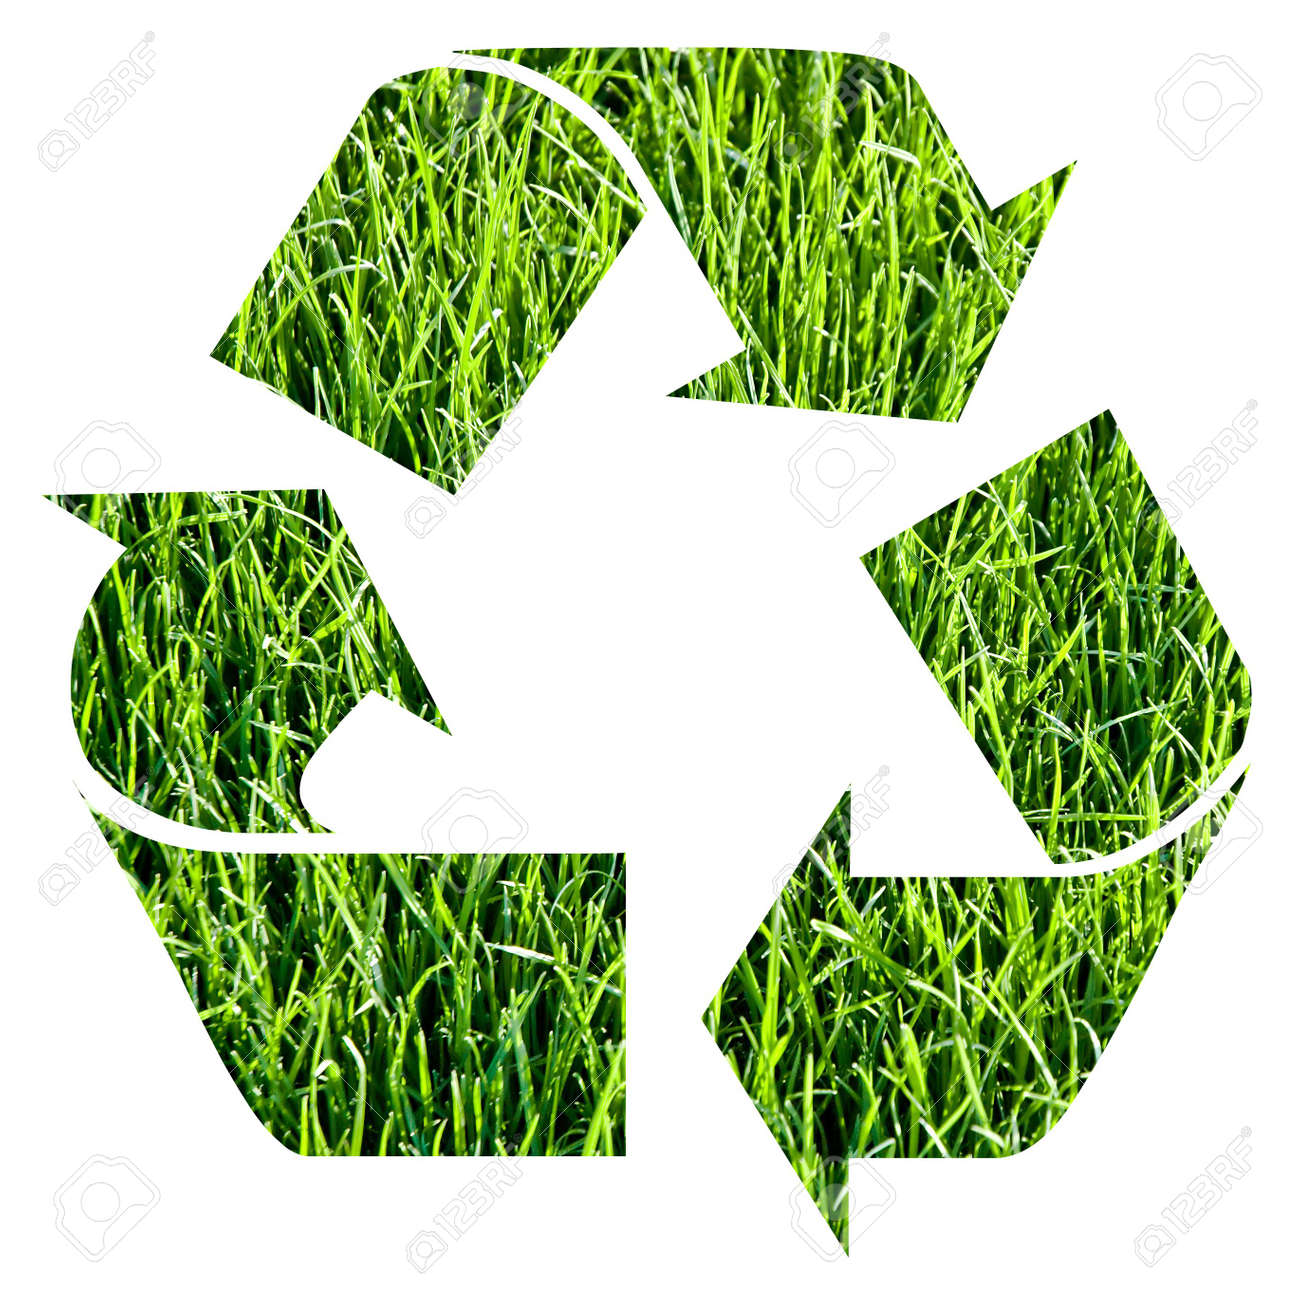 recycle symbol made with grass Stock Photo - 3102726